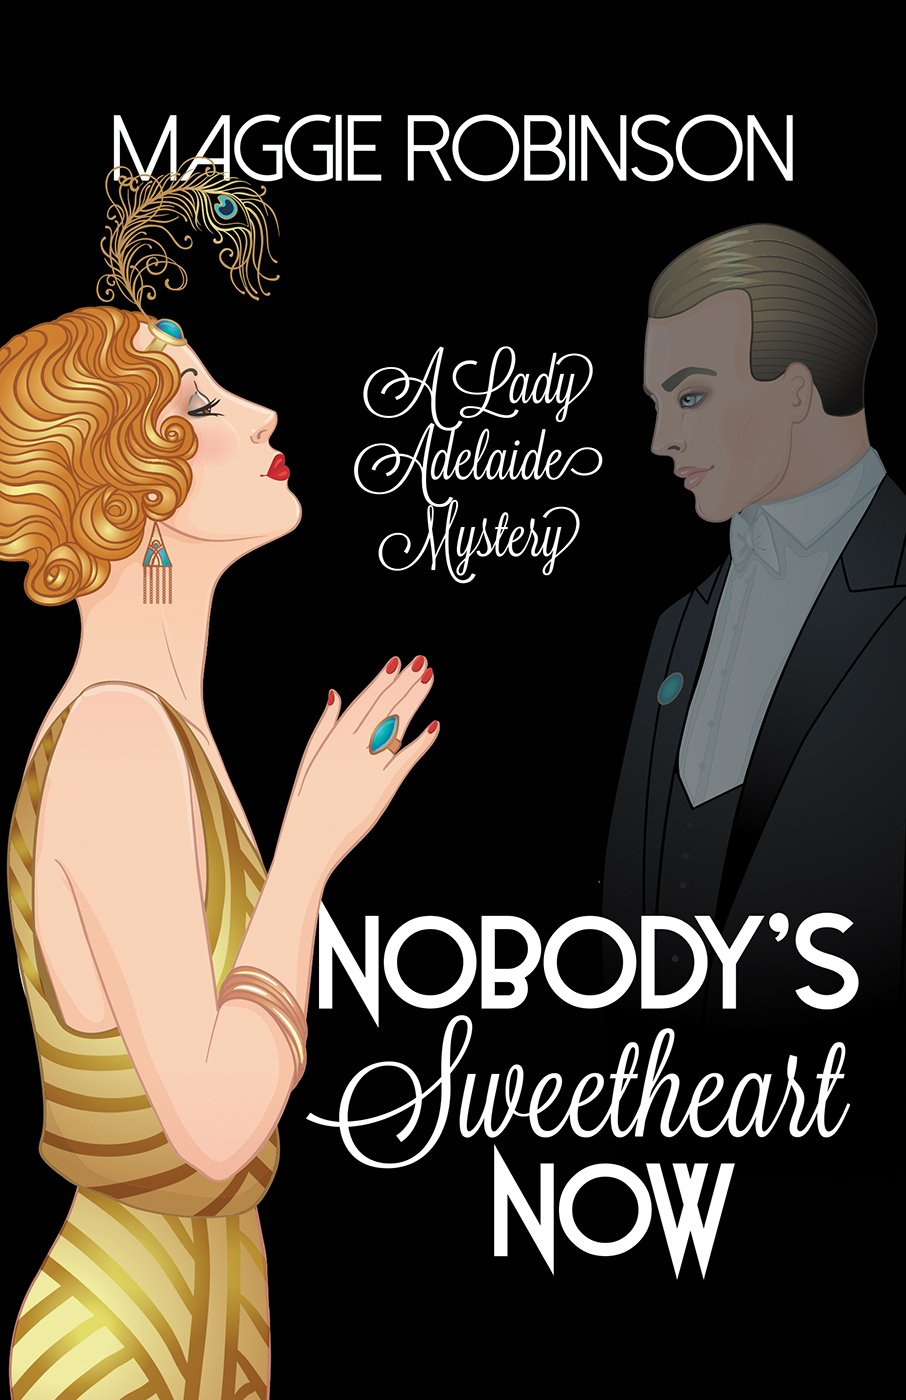 Nobody's Sweetheart Now by Maggie Robinson